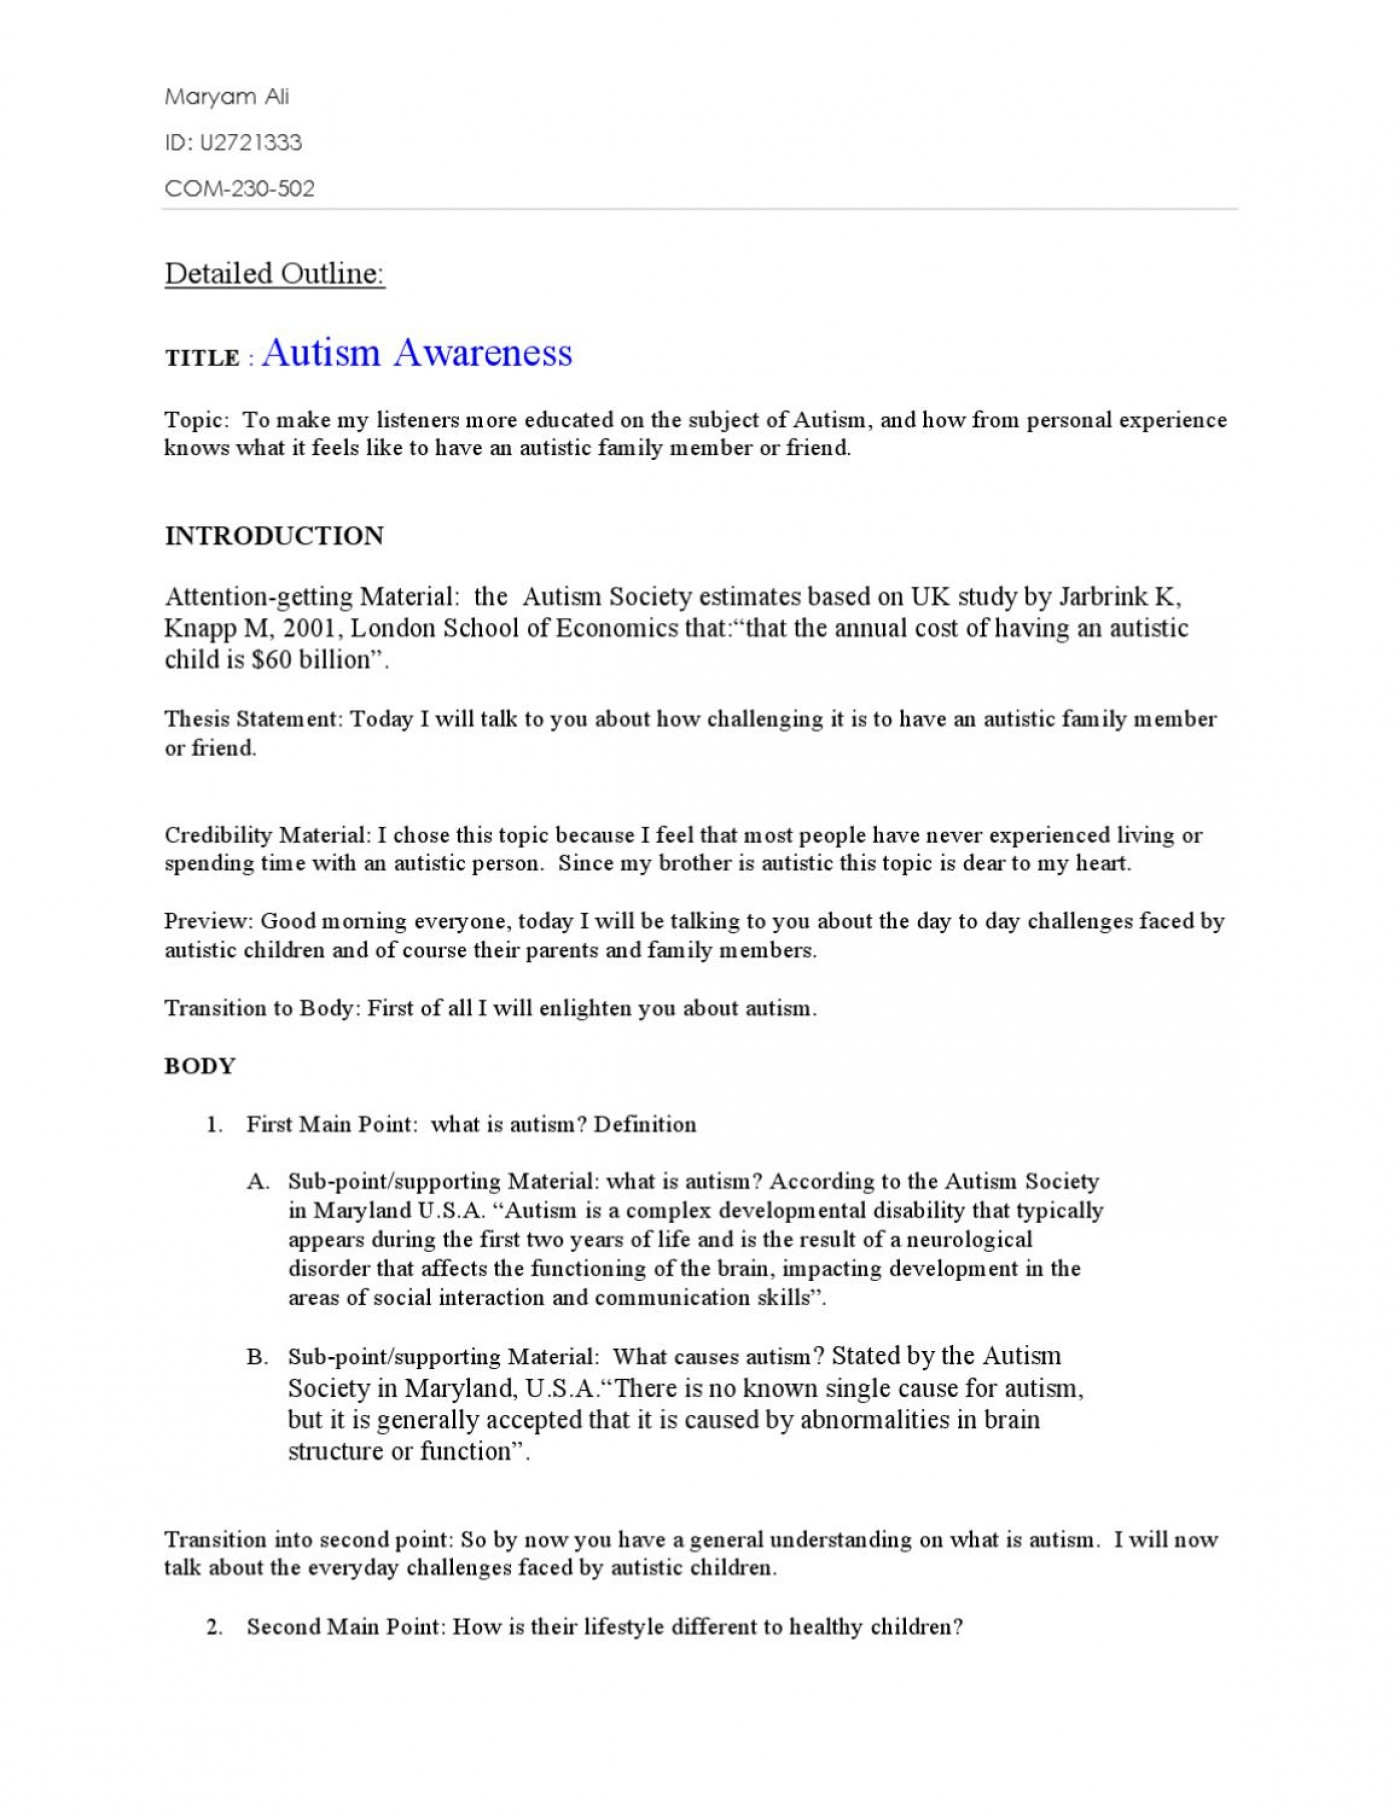 012 Autism Research Paper Thesis Statements Page 1 Awful 1400